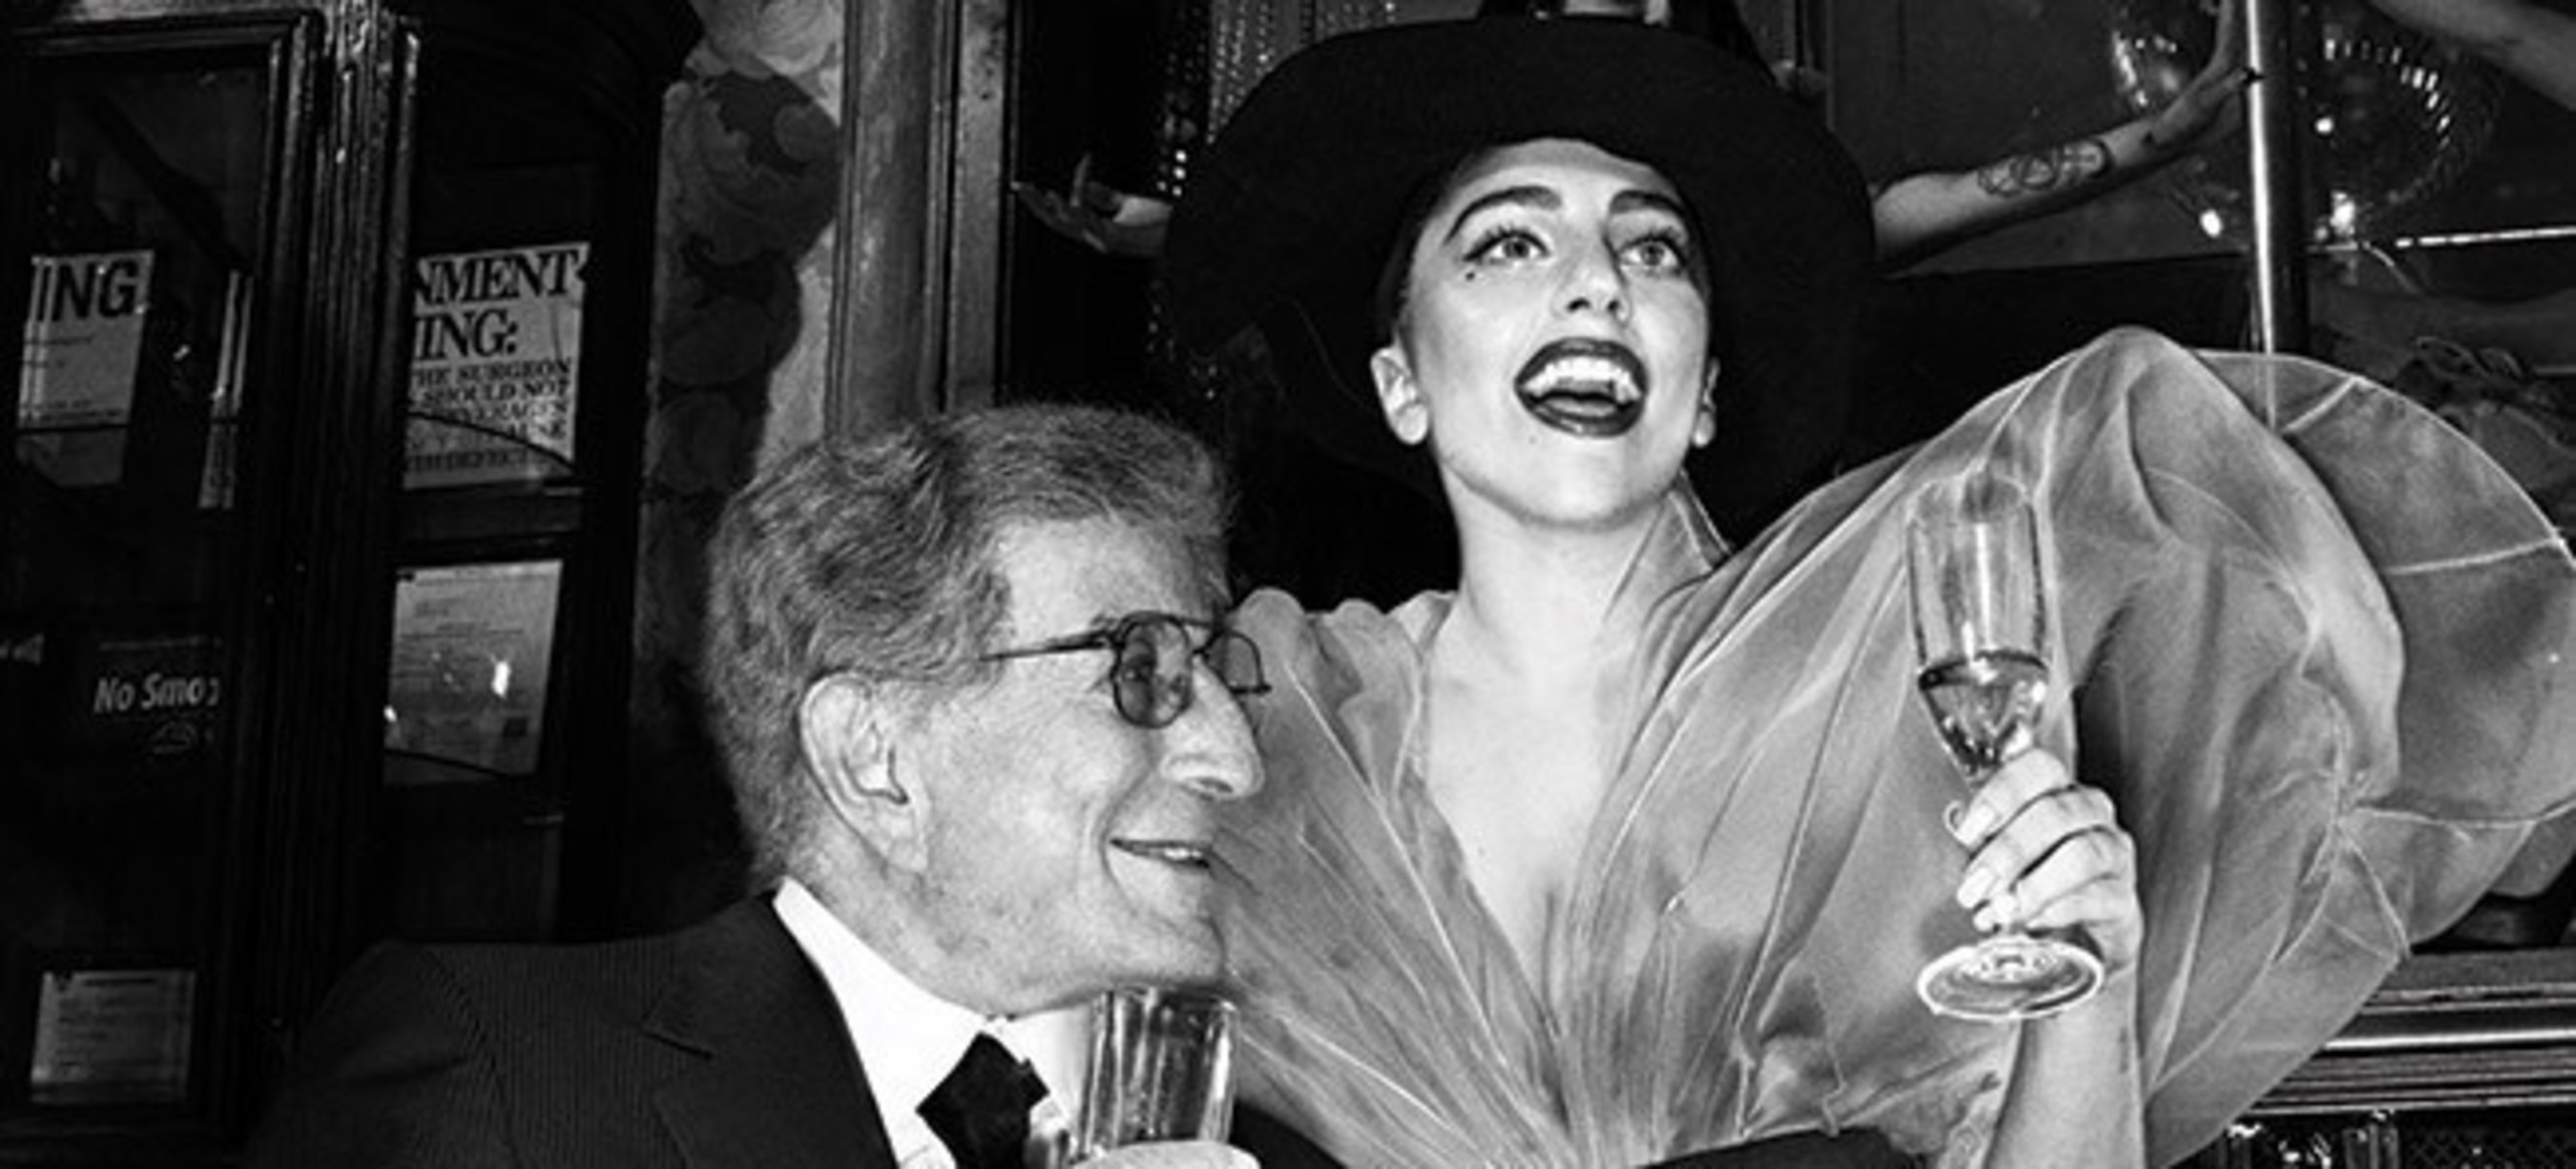 Tony Bennett And Lady Gaga To Perform Together Live At The Hollywood Bowl And Radio City Music Hall